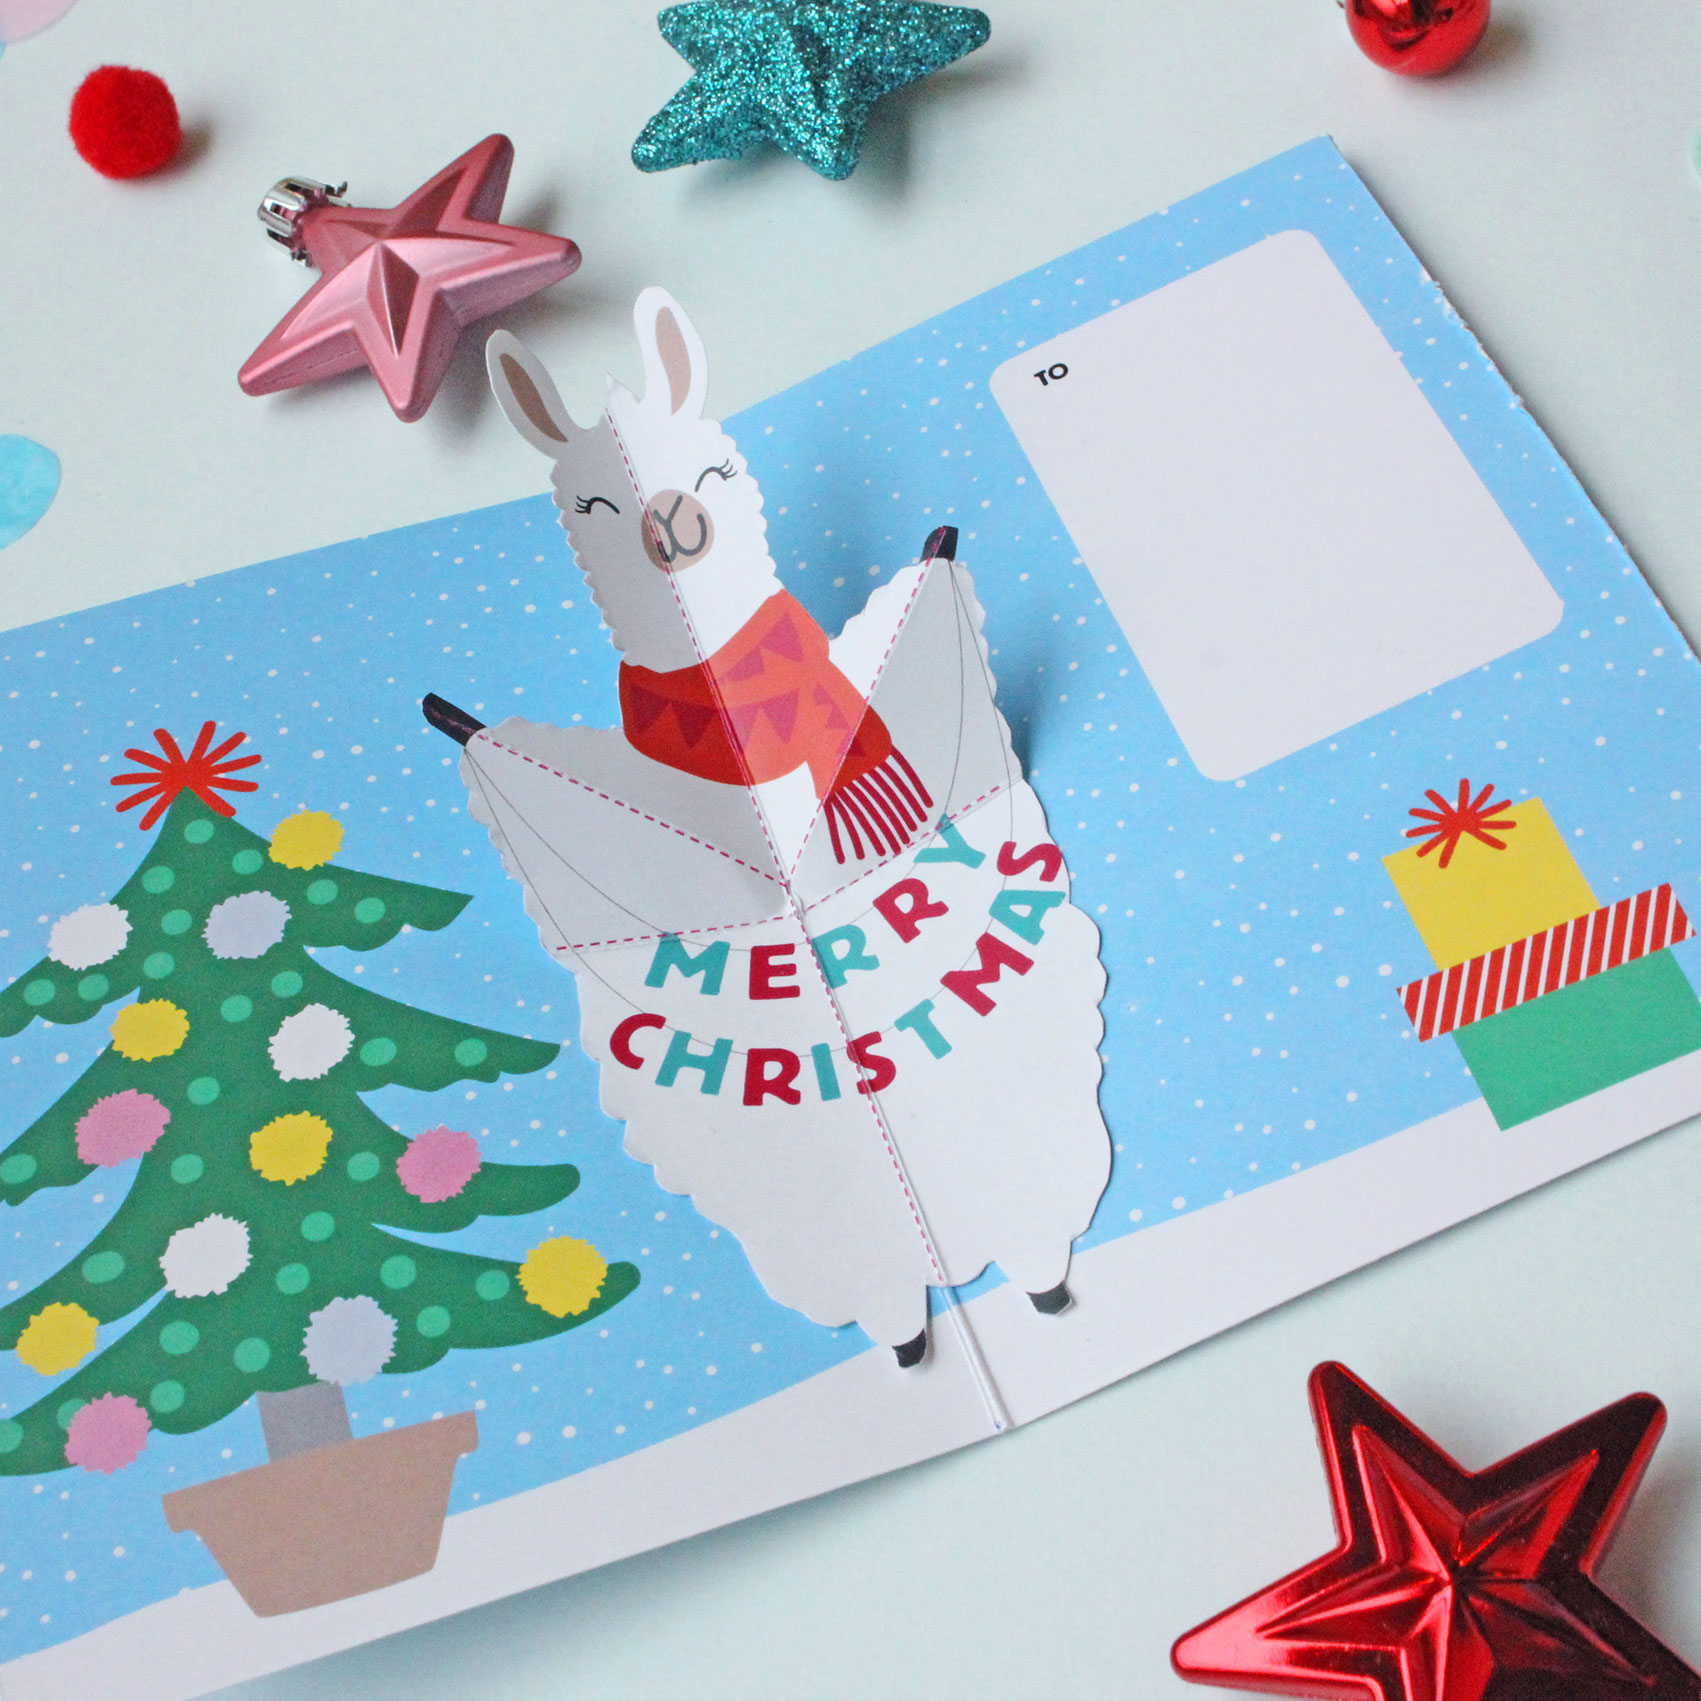 Llama Christmas Tree.Raise The A Llama This Christmas Paperchase Journal